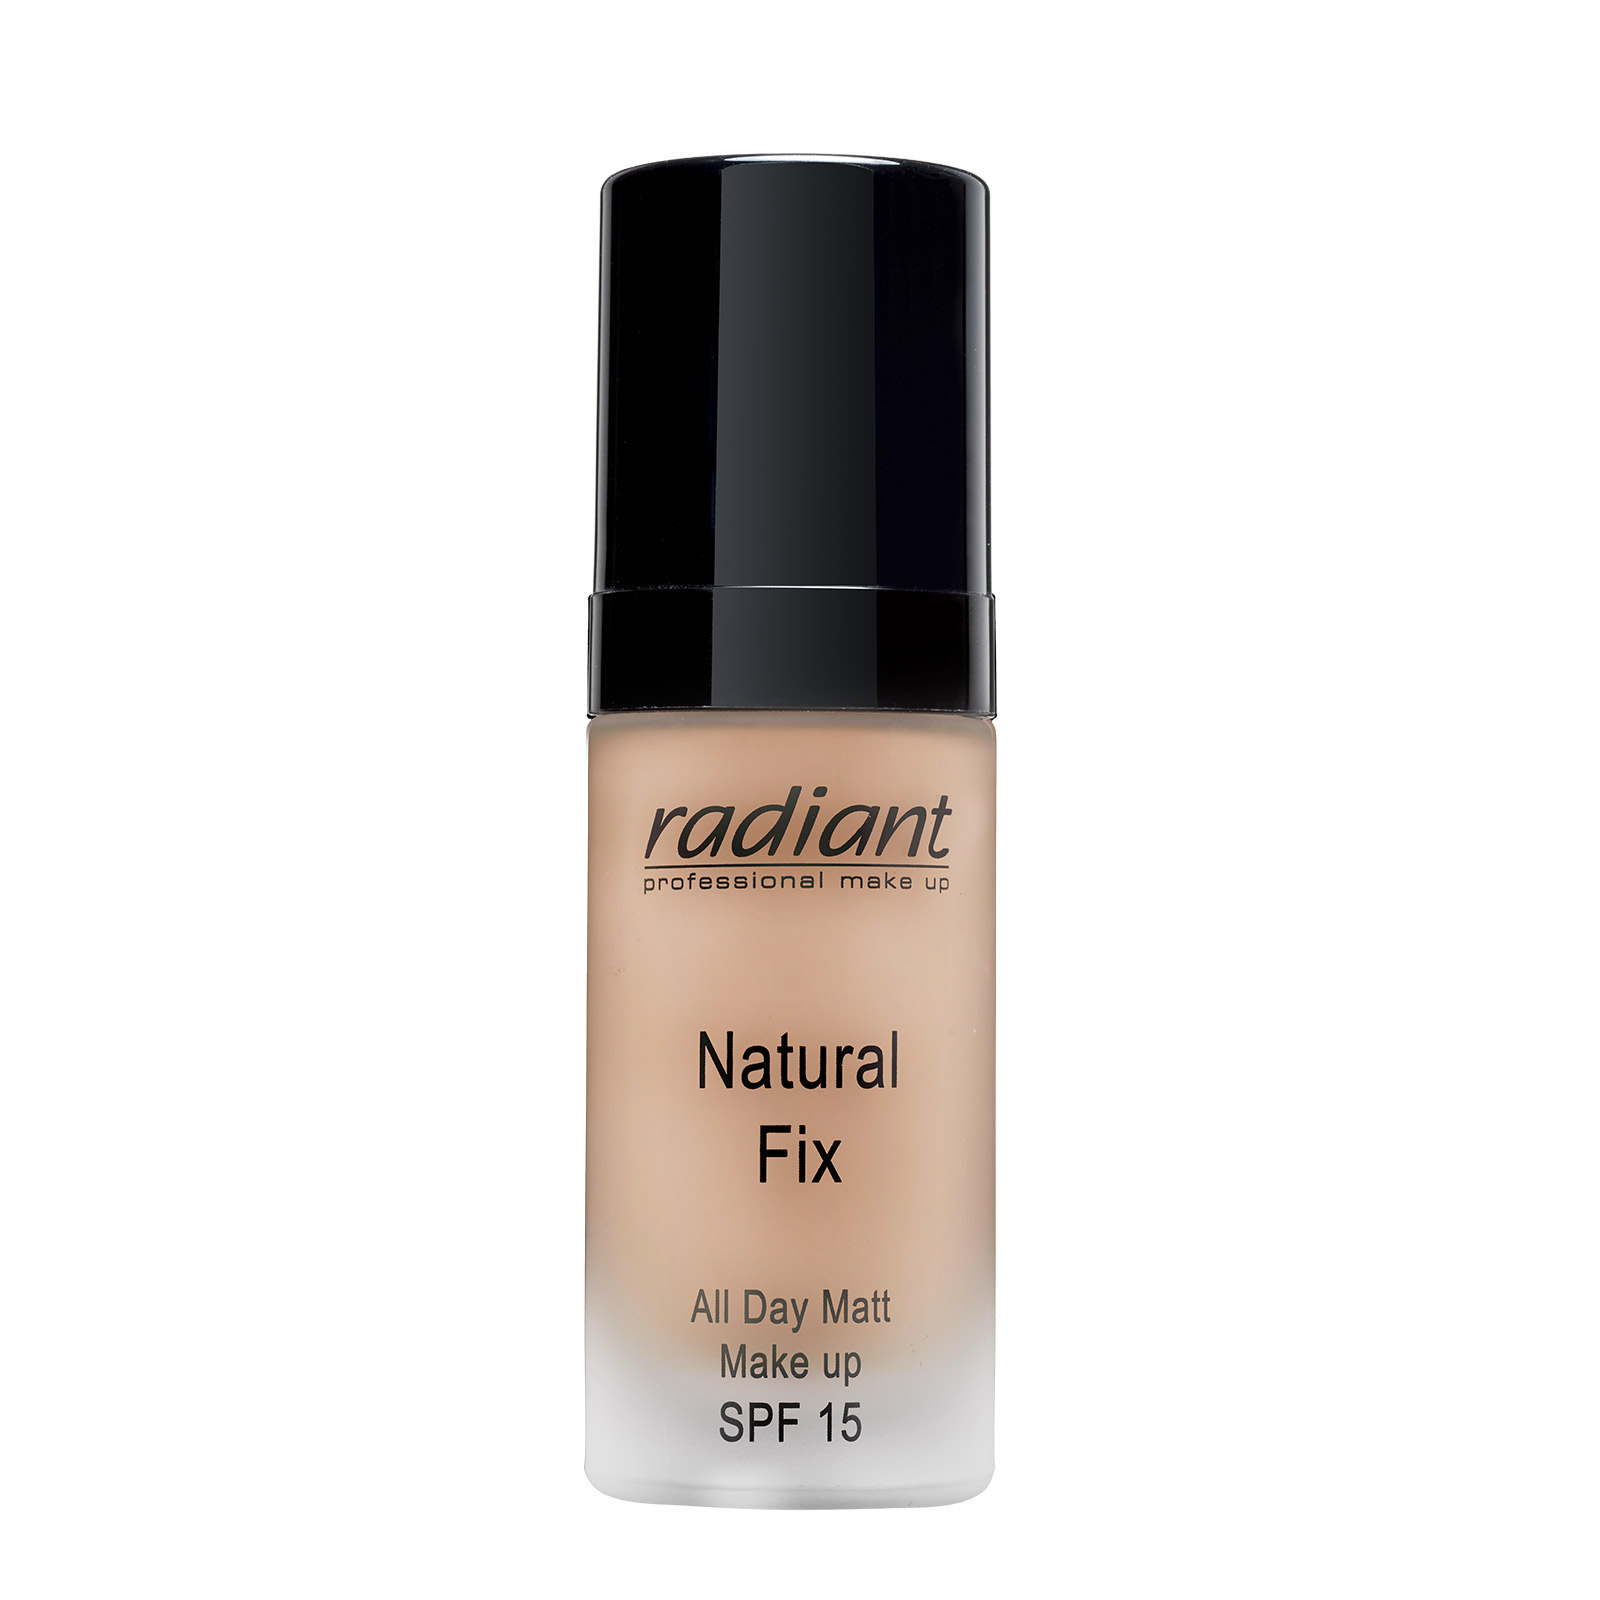 NATURAL FIX ALL DAY MATT MAKE UP SPF 15 (05 Light Tan)